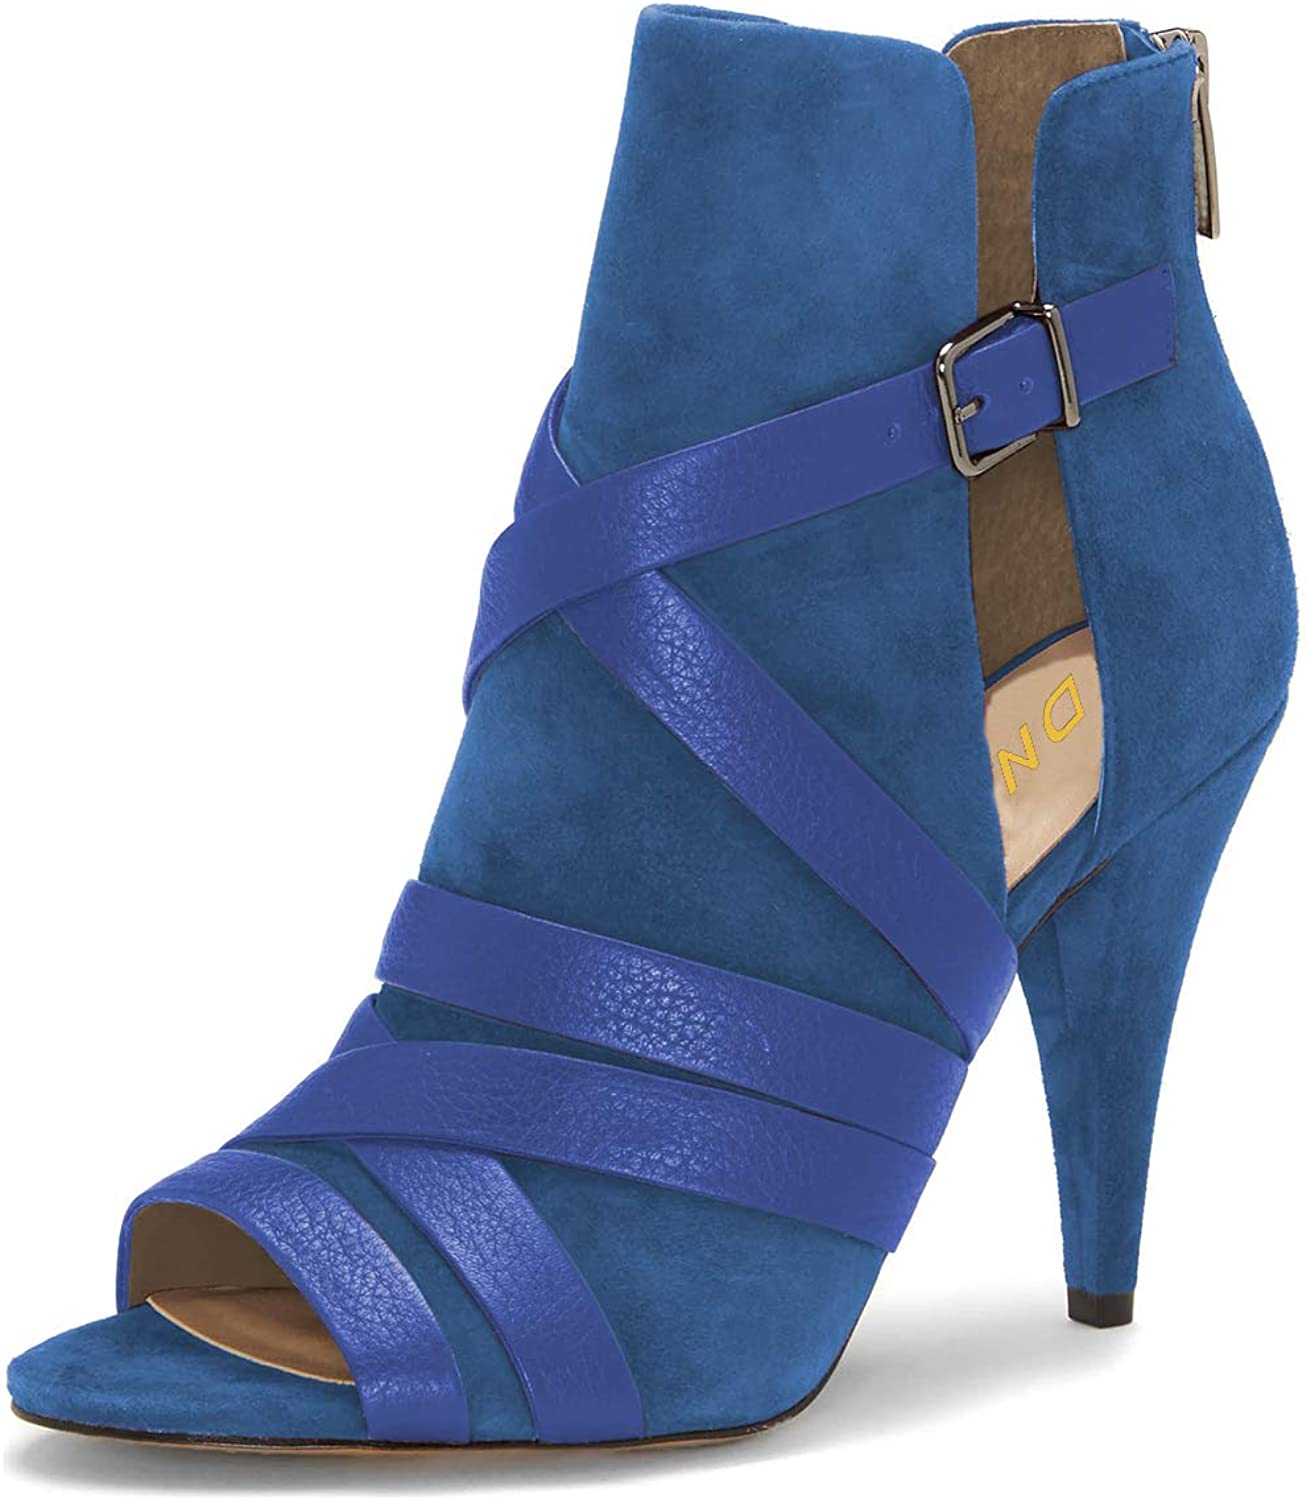 YDN Women Peep Toe Cone High Heel Booties Pumps Cutout Buckle Dress shoes for Party